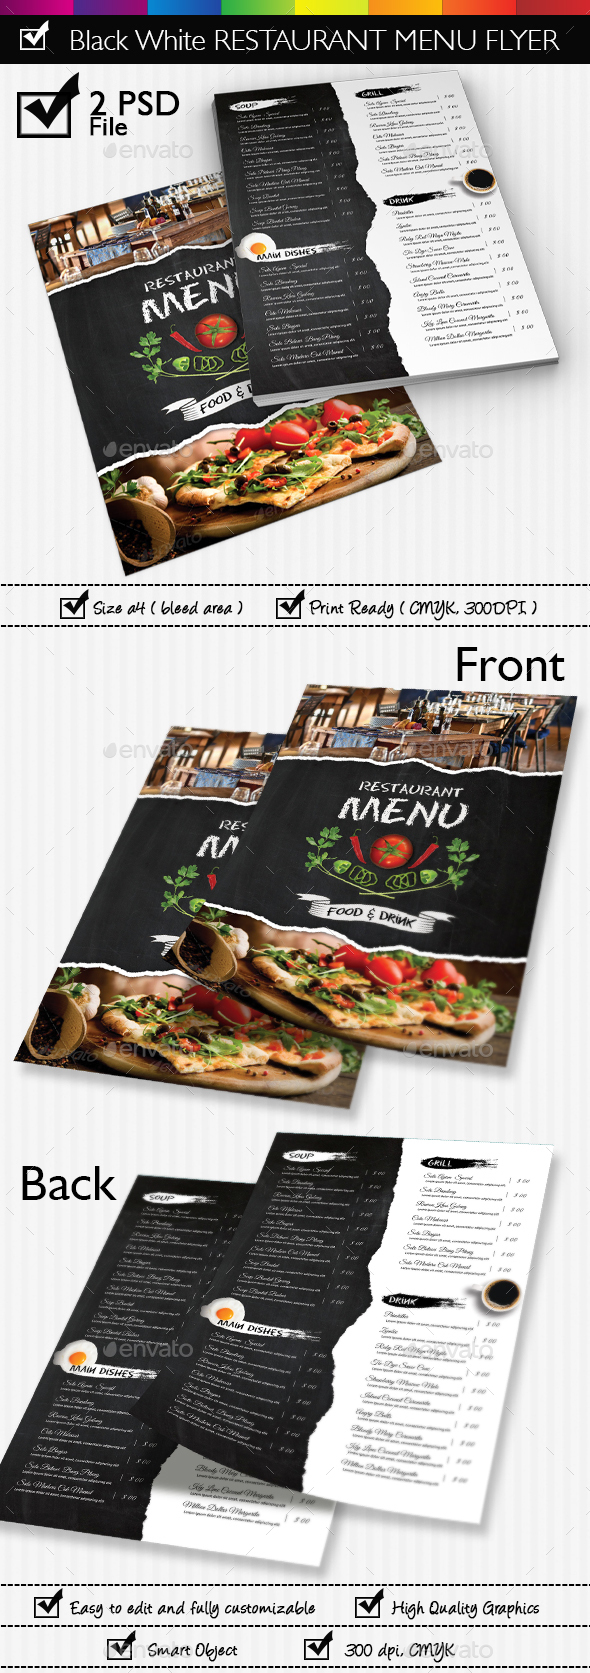 Black White Restaurant Menu Flyer Templates - Restaurant Flyers